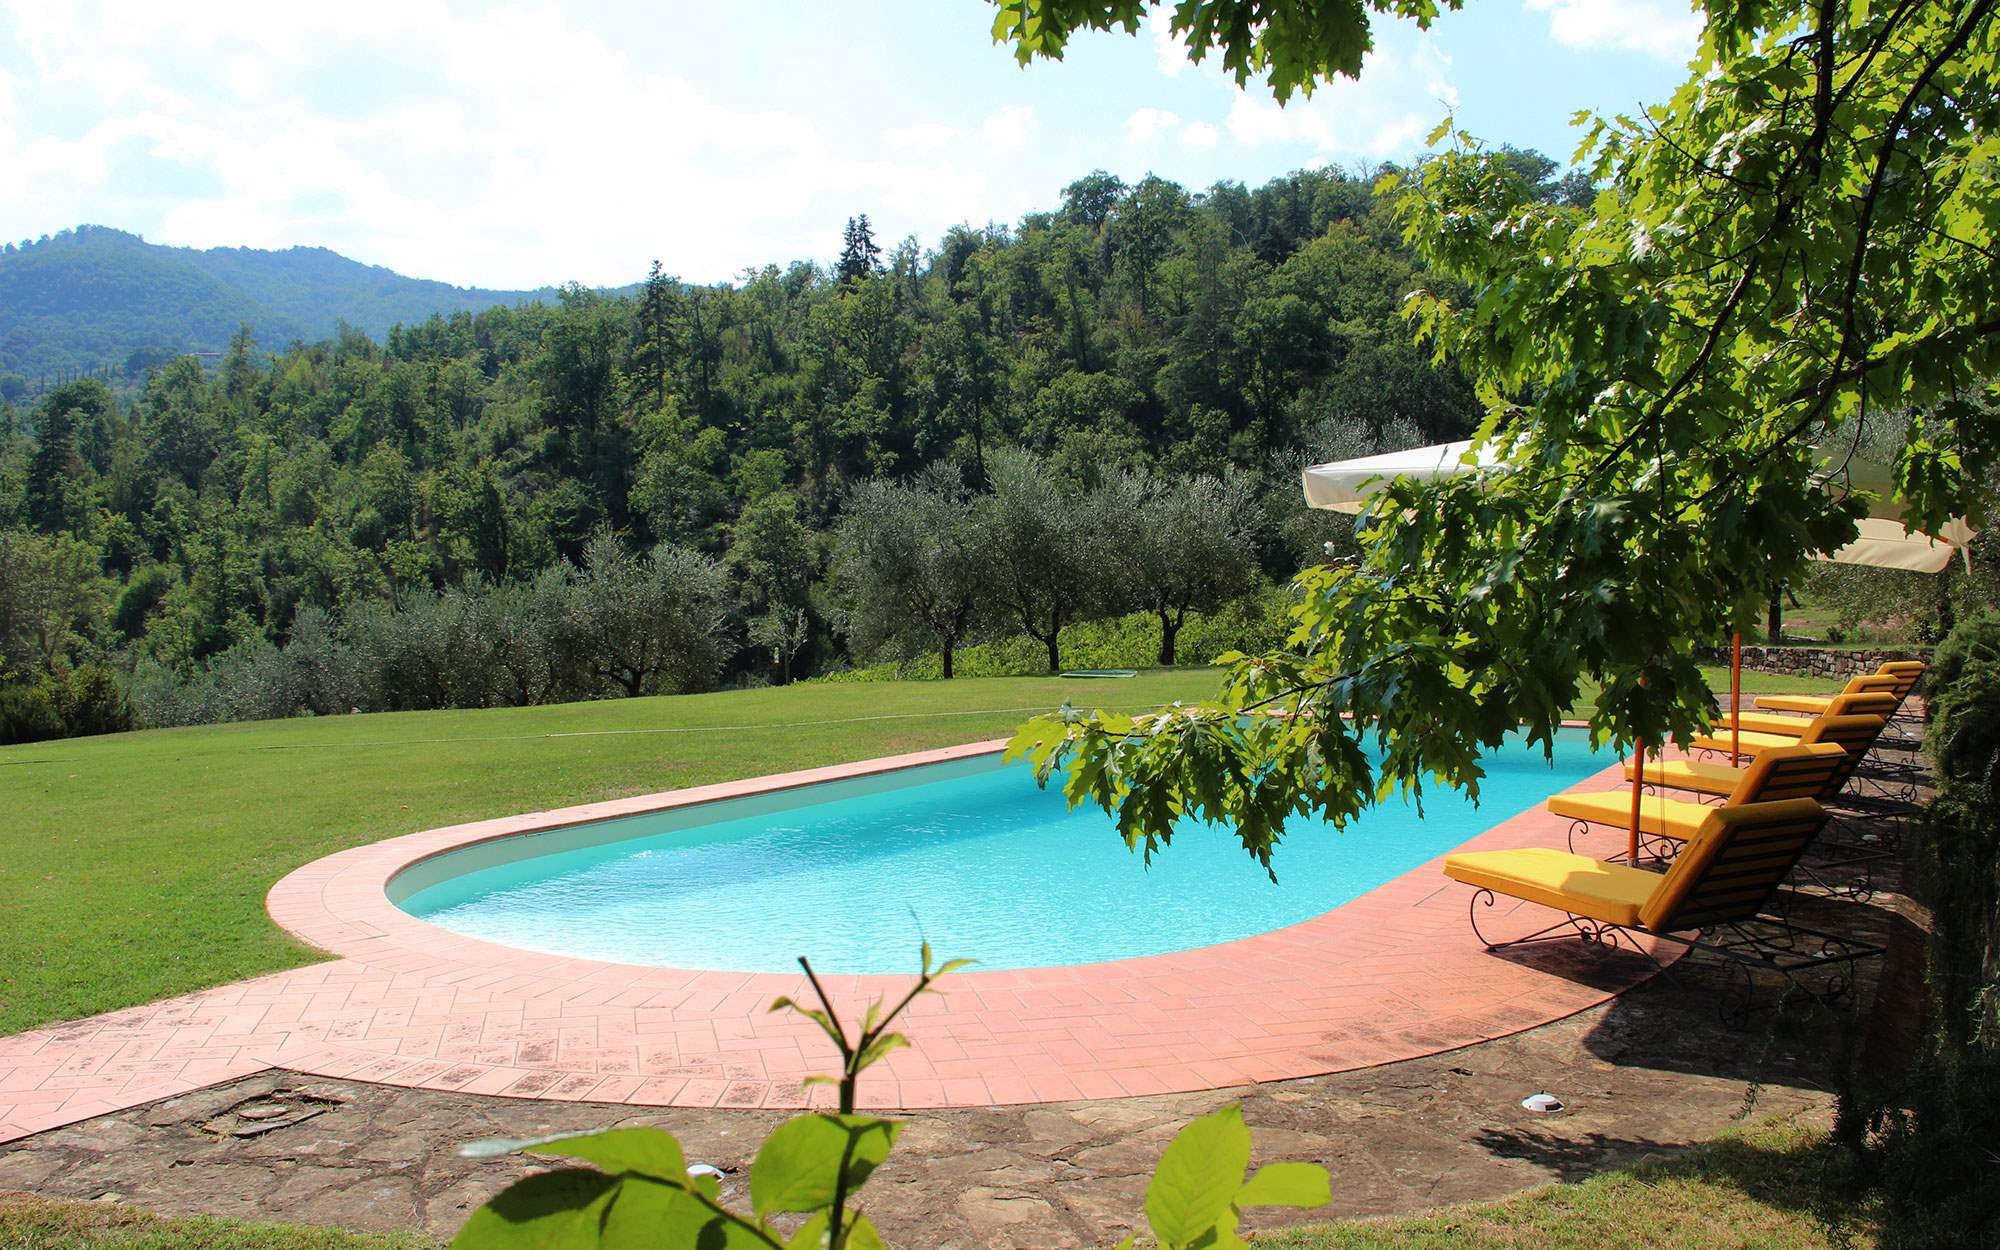 Villa Felicita, Main house only, 6 persons rate, 3 bedroom villa in Chianti & Countryside, Tuscany Photo #4